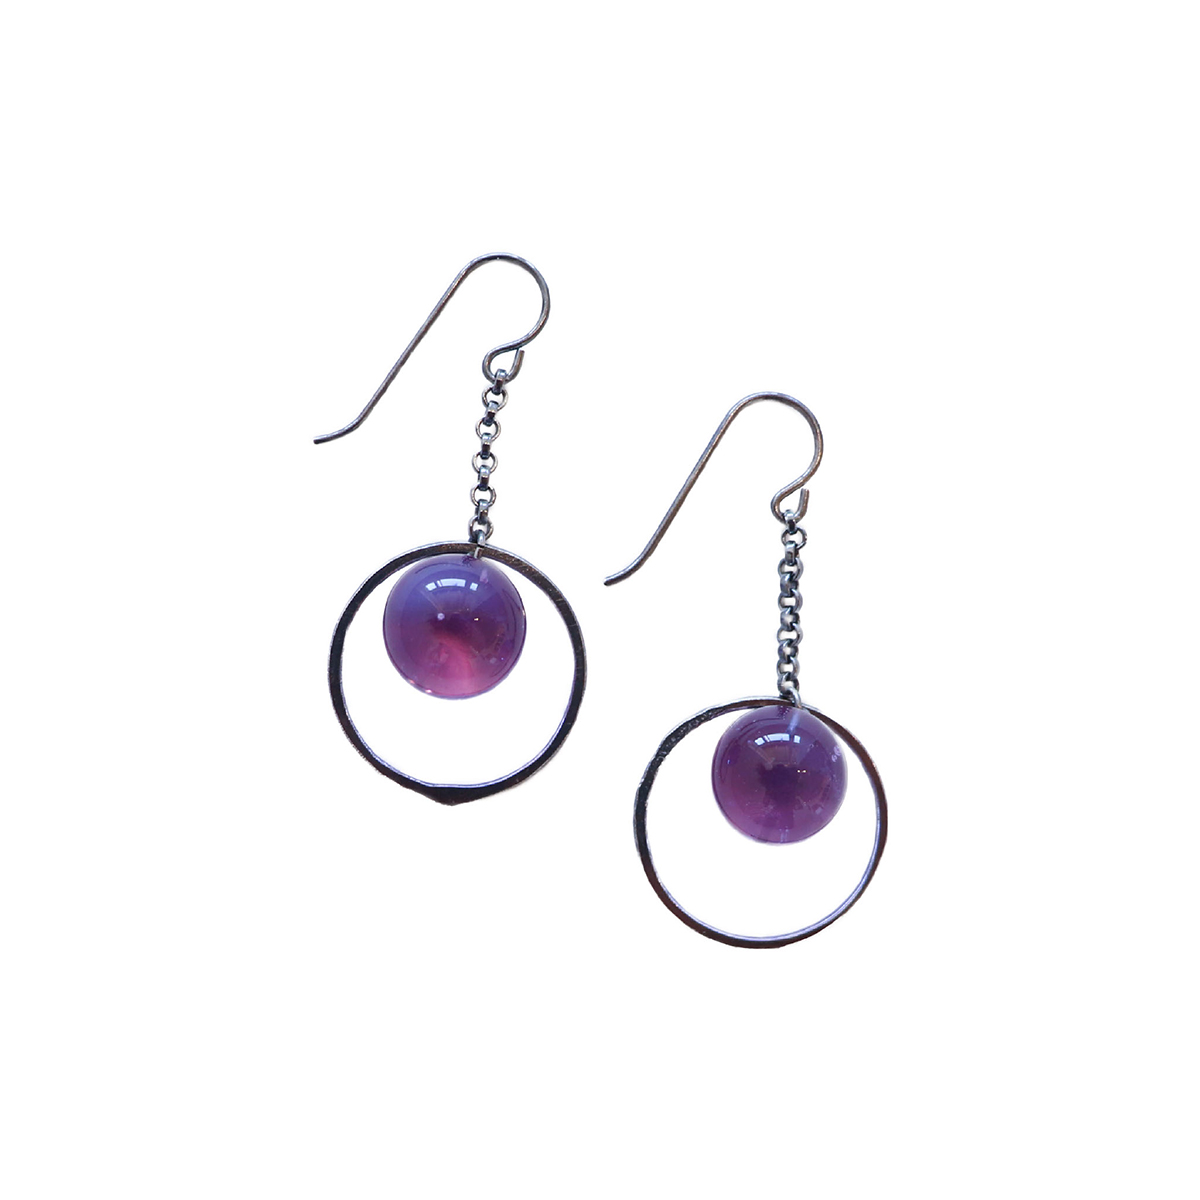 KRISTA BERMEO - LAVENDER HOOP GLOBE EARRINGS - GLASS